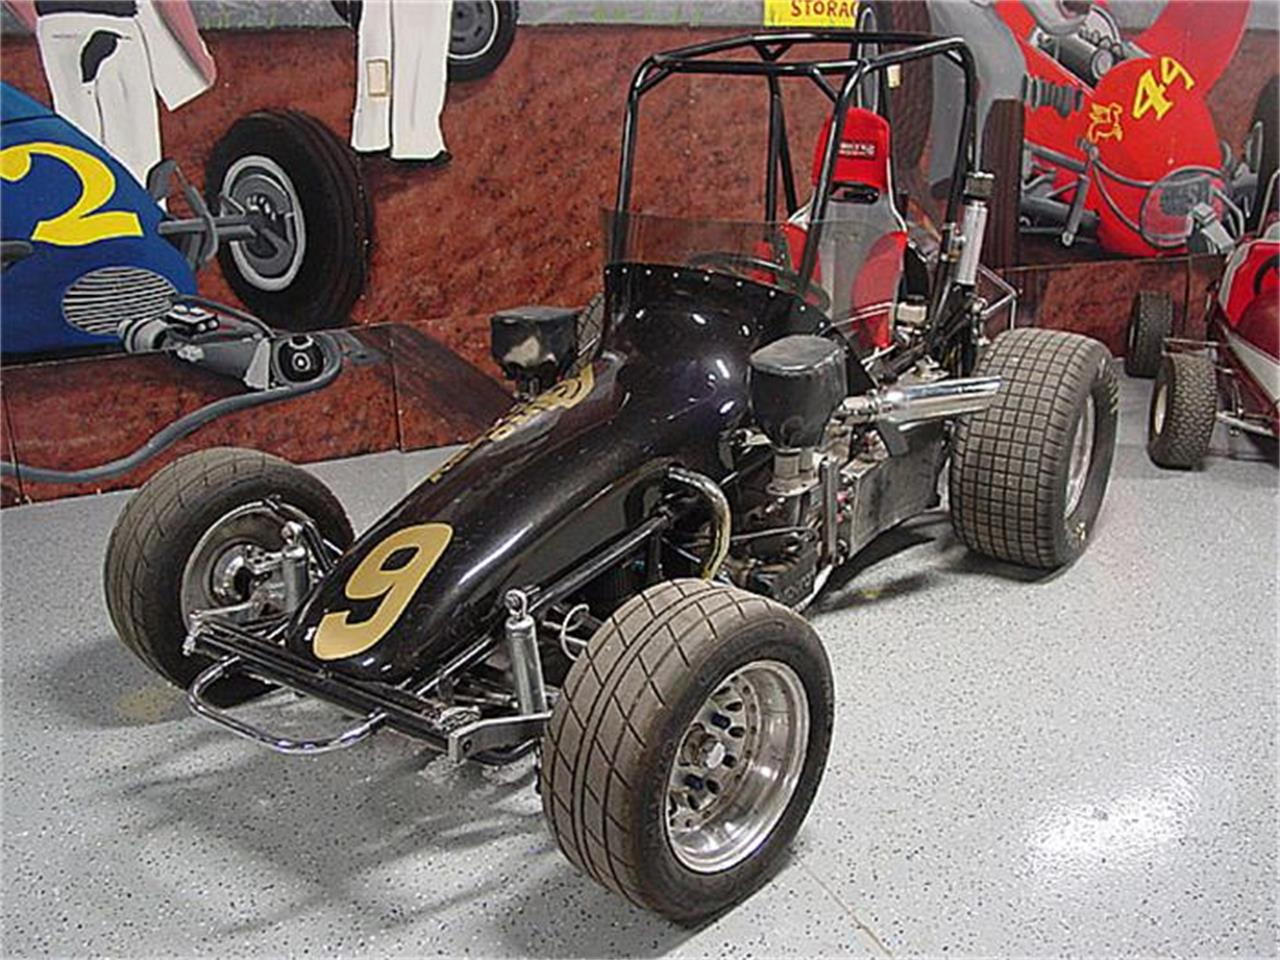 Bidding opens for The Kings Garage auction - Historic